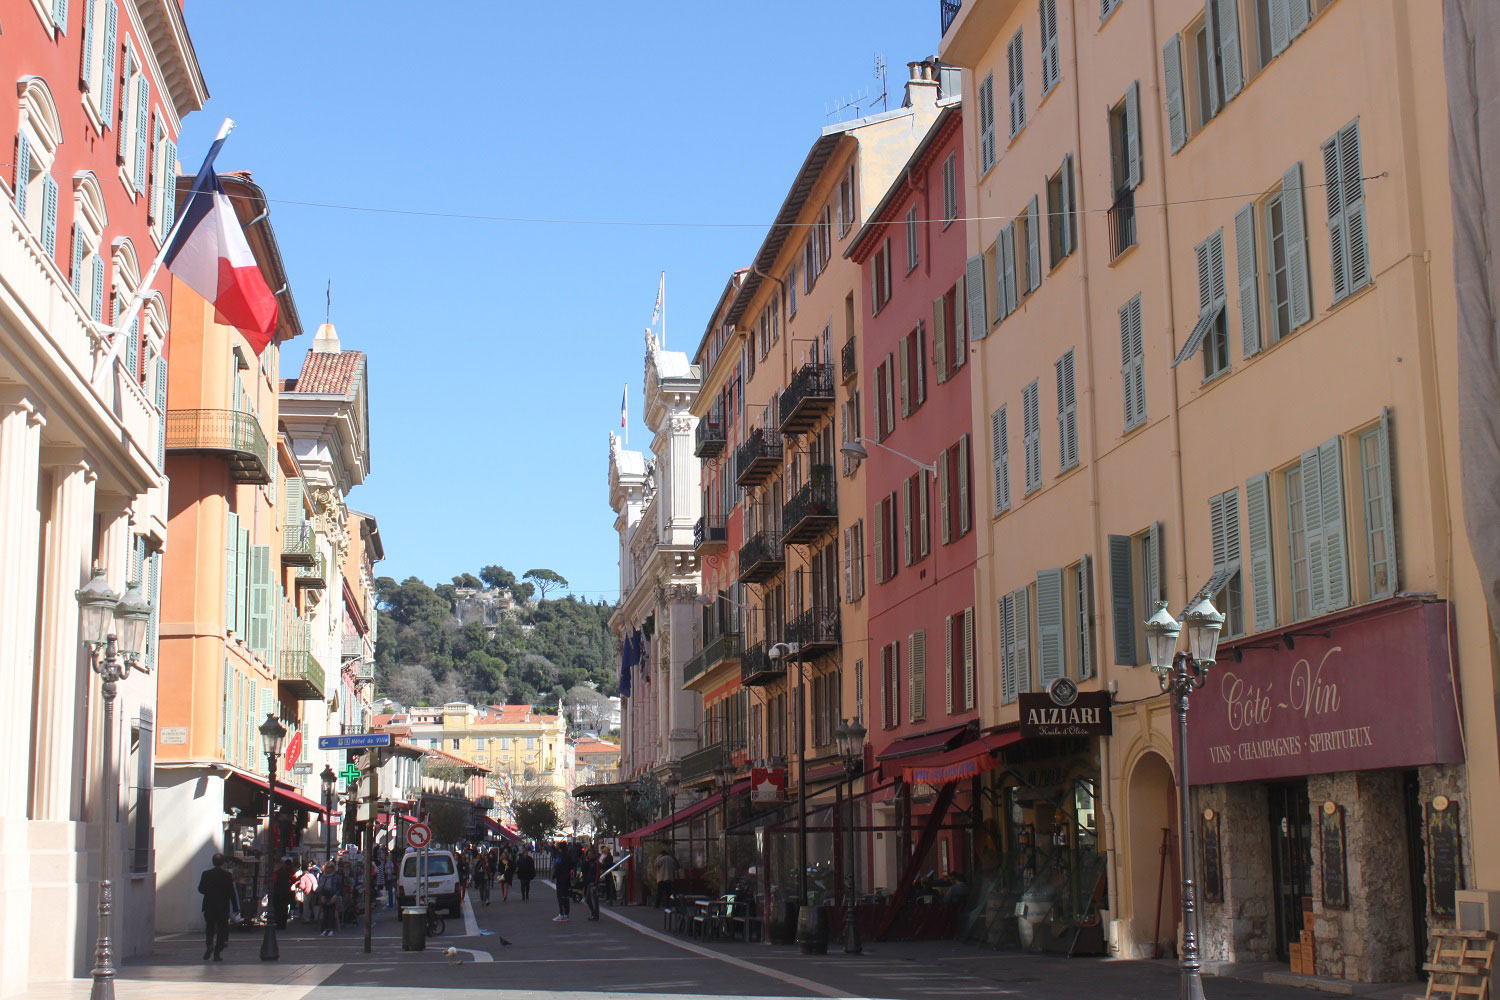 The streets of Nice